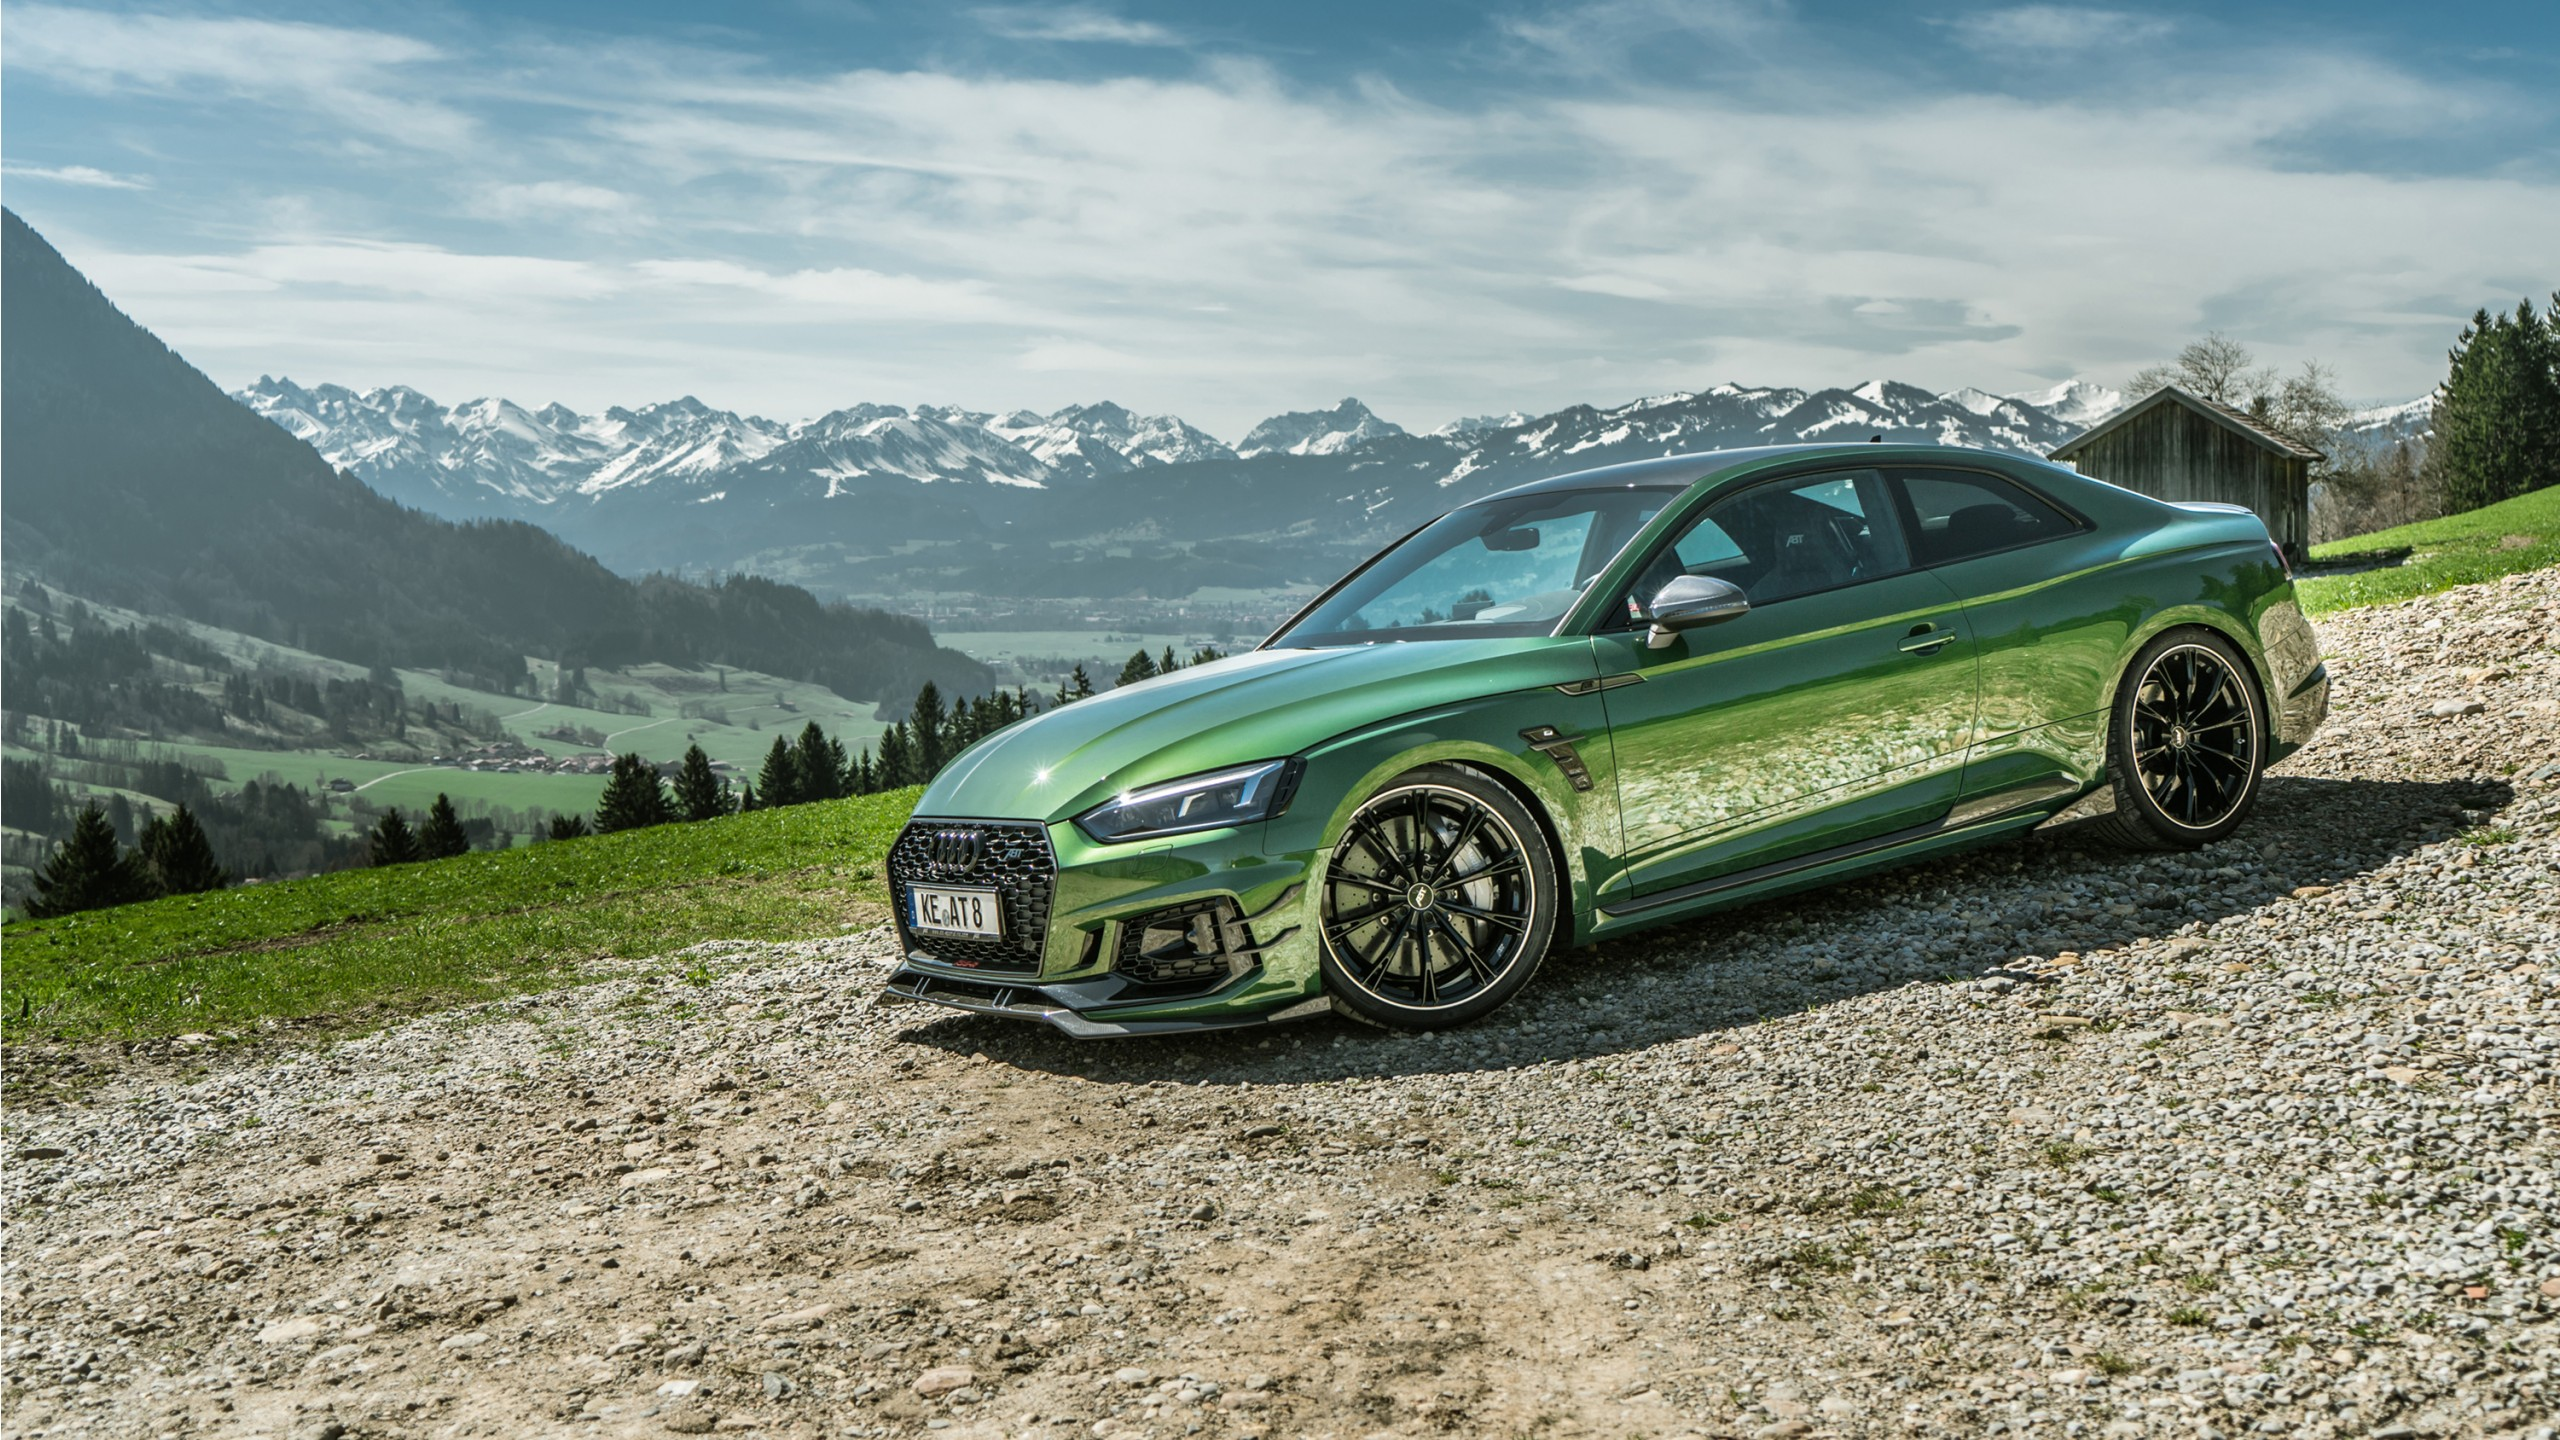 2018 ABT Audi RS5 R Coupe Wallpaper | HD Car Wallpapers | ID #10268